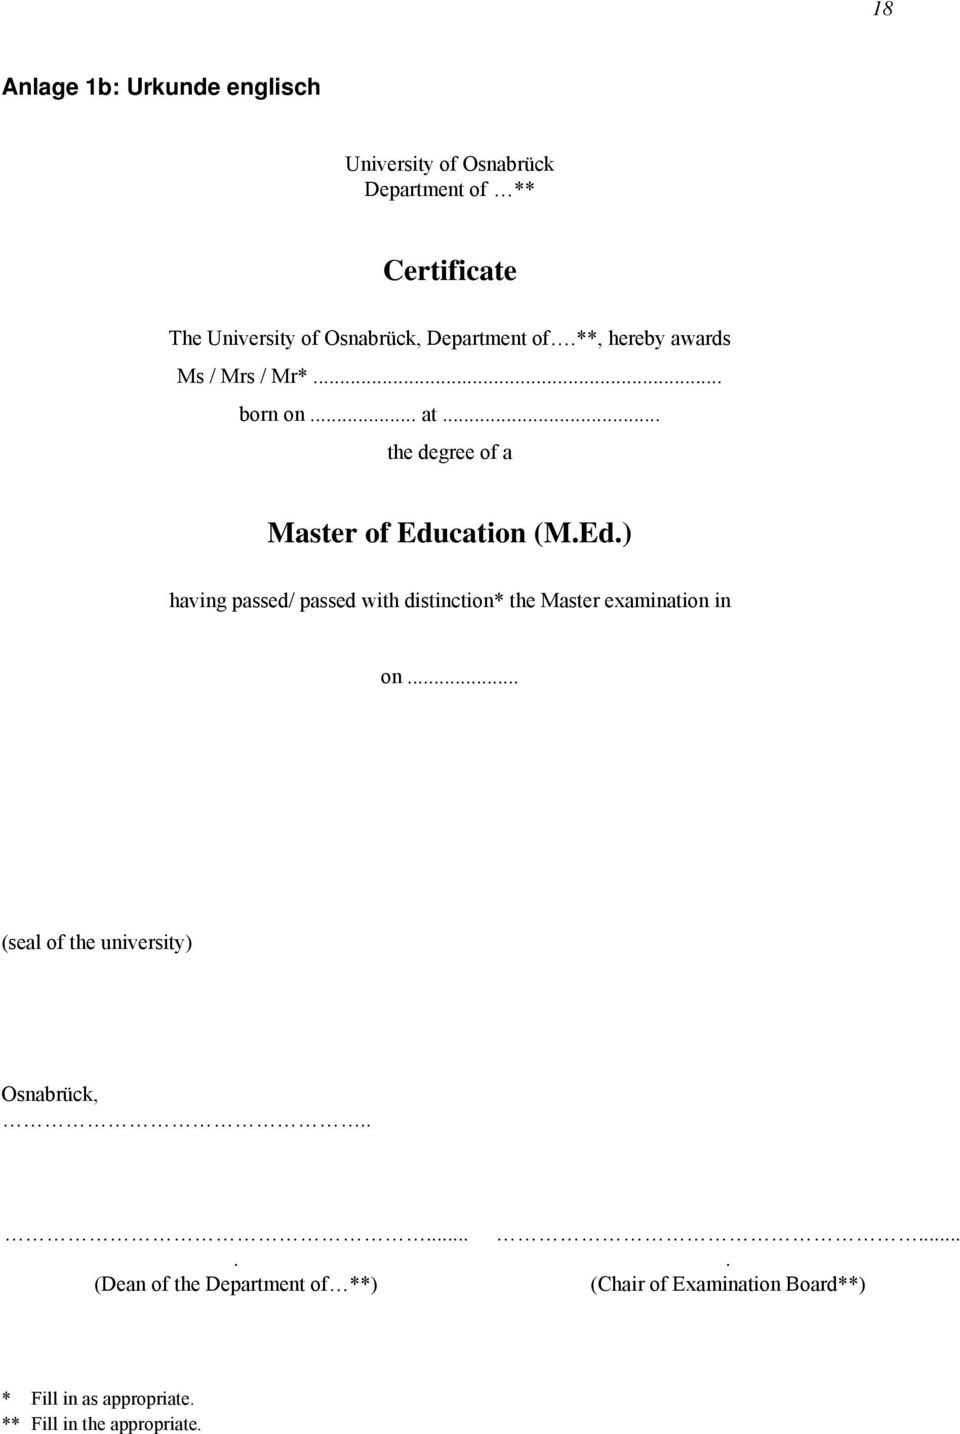 cation (M.Ed.) having passed/ passed with distinction* the Master examination in on.